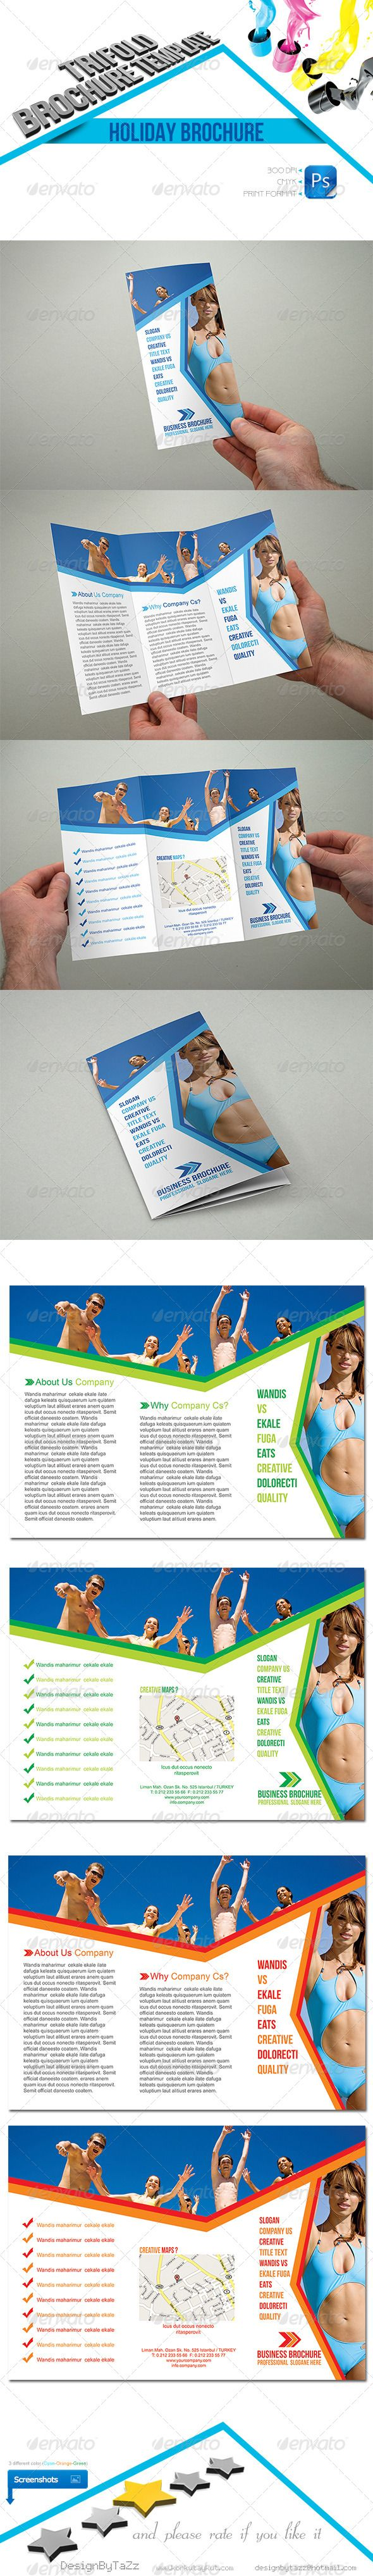 Holiday Trifold Template  #GraphicRiver         Holiday Trifold Template   Fully layered PSD 300 Dpi, CMYK Size: A4 Completely editable, print ready All Image are in vector format, so can customise easily Photos are not included in the file Help.txt file   Font: Bebas Neue ( .dafont /bebas-neue.font) Arial   Holiday Business Roll-Up: graphicriver /item/holiday-business-rollup/4473146?WT.ac=portfolio&WT.seg_1=portfolio&WT.z_author=DesignByTaZz&ref=DesignByTaZz   Flyer: graphicriver…